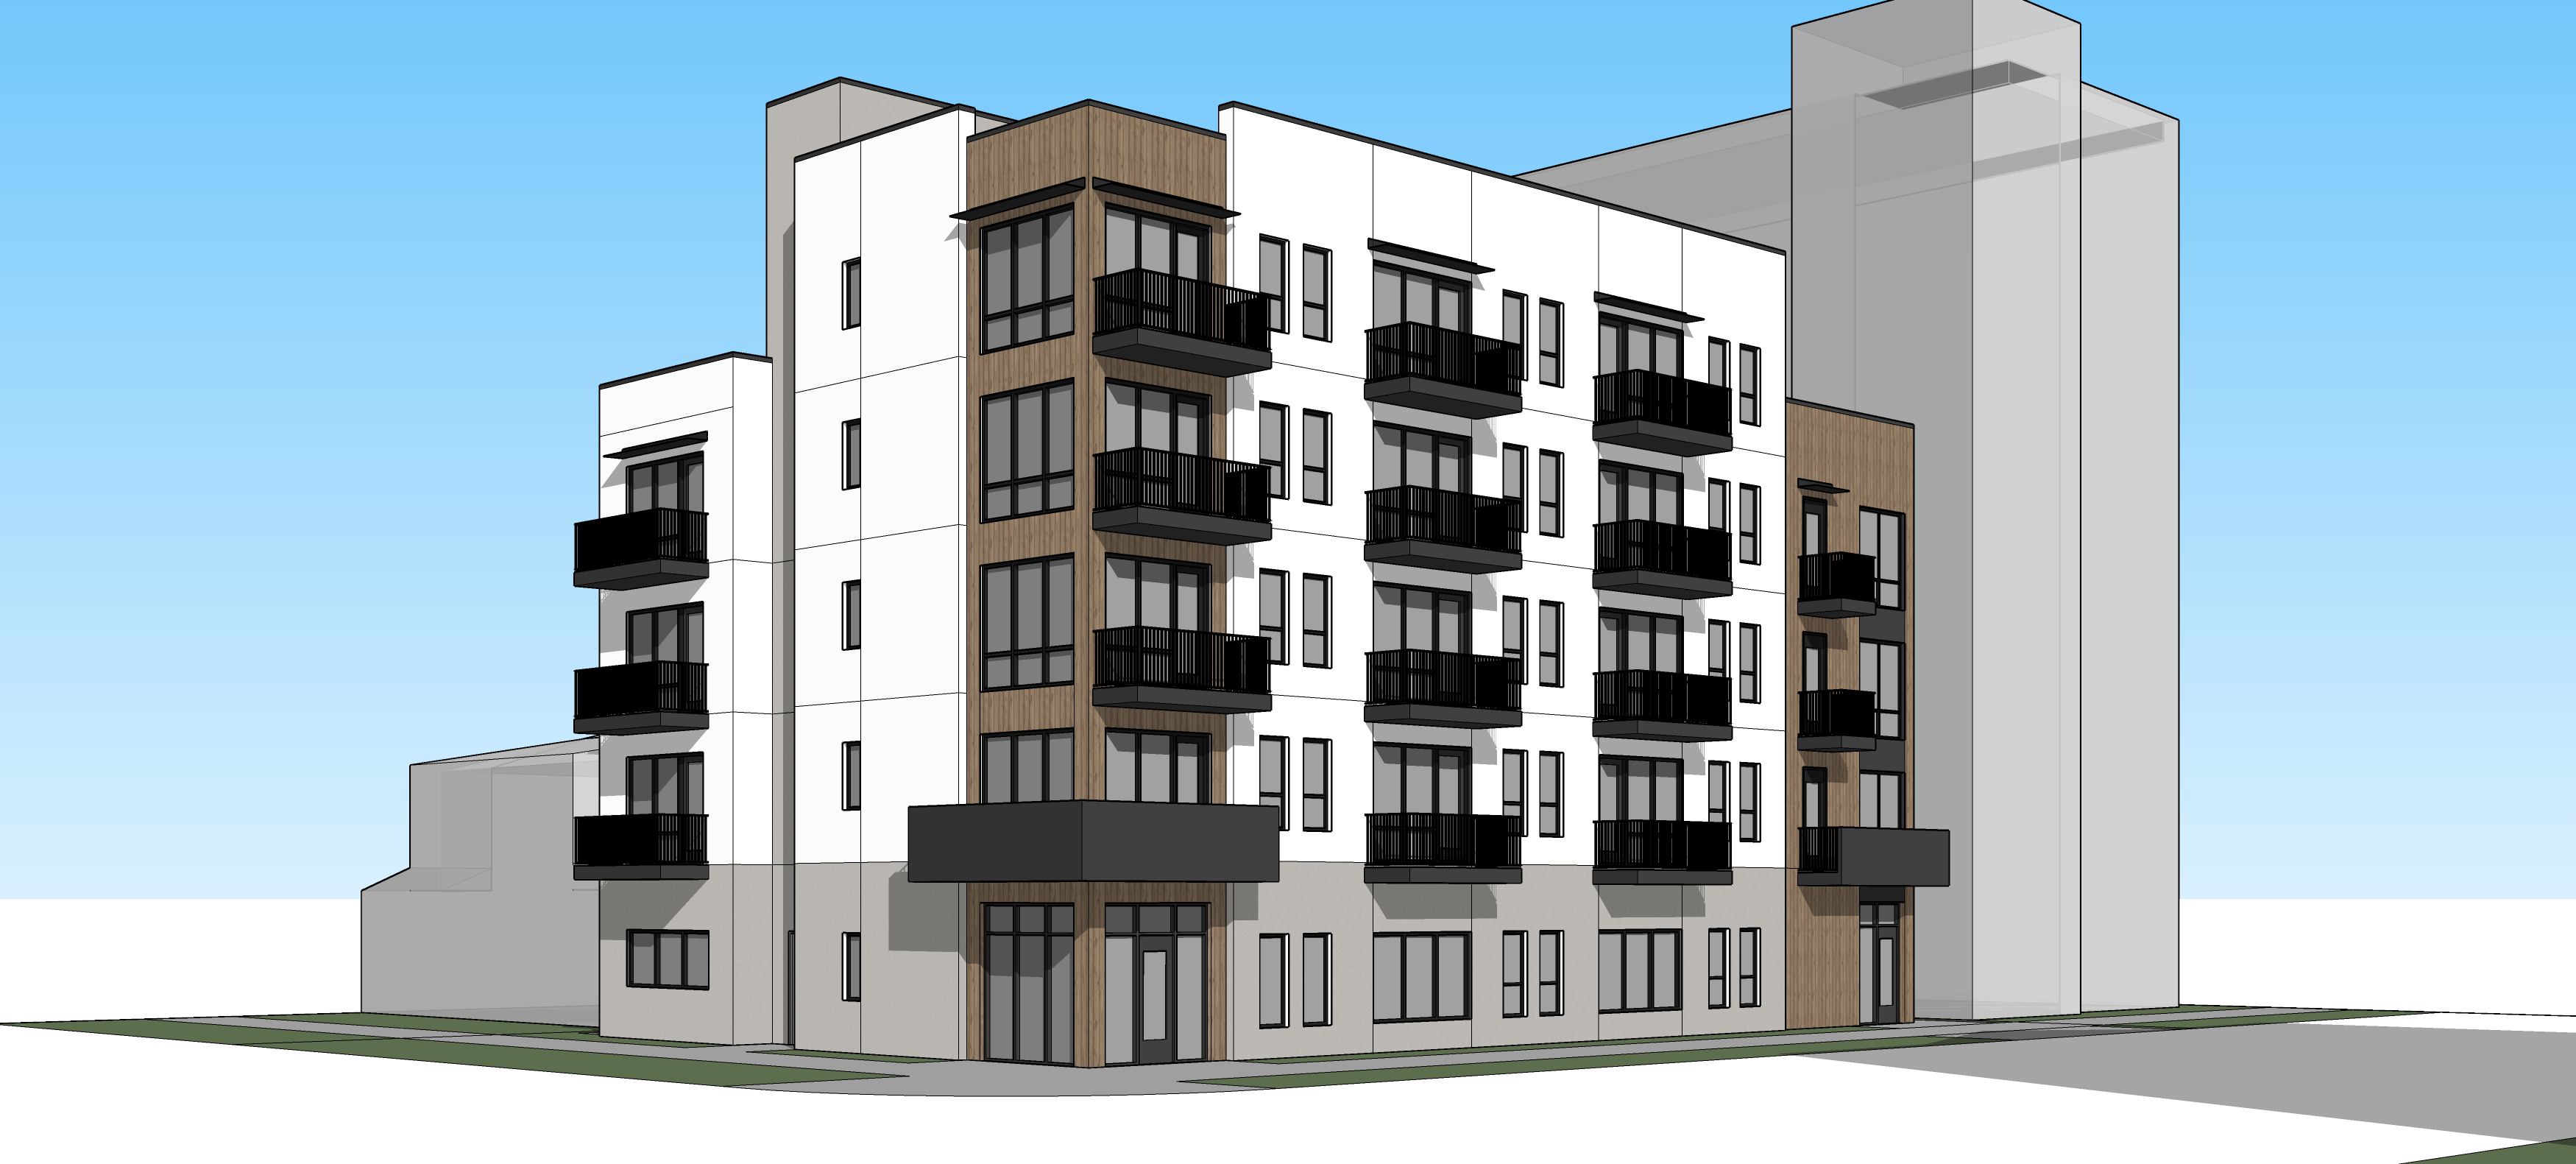 357 Apartments Rendering Corner